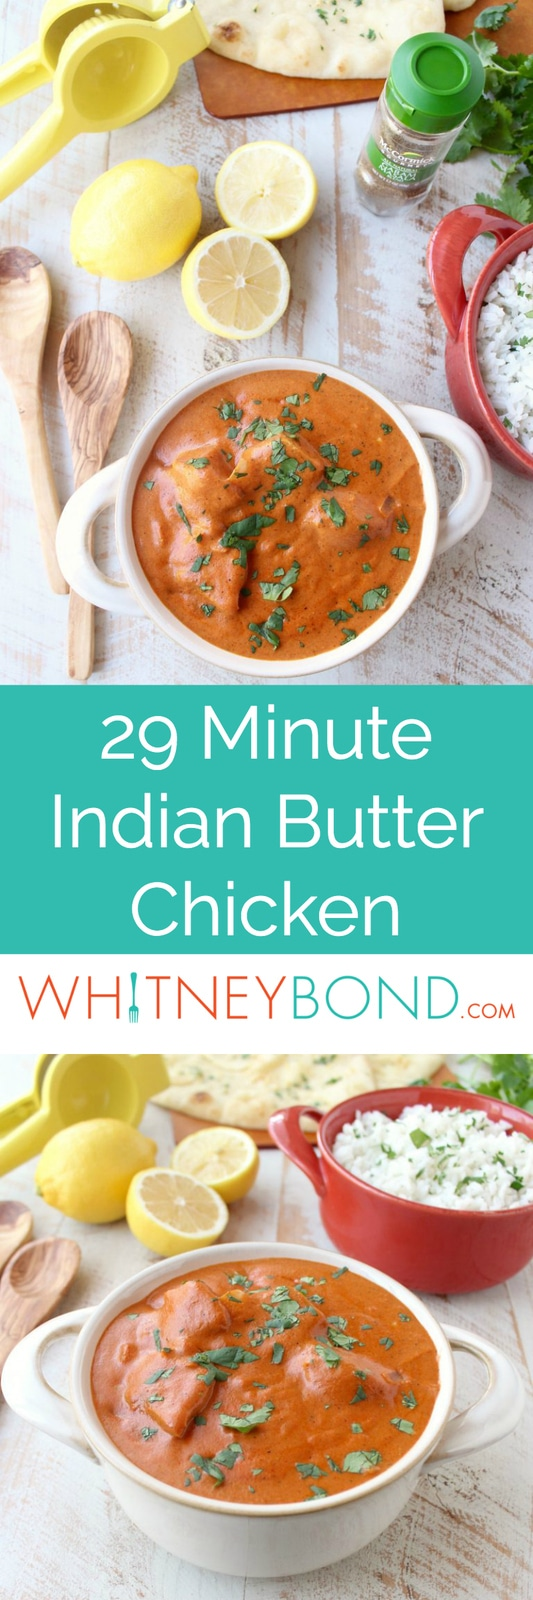 This 29 Minute Indian Butter Chicken recipe is a quick & easy twist on a classic Indian dish that's perfect served with cilantro rice & garlic naan!